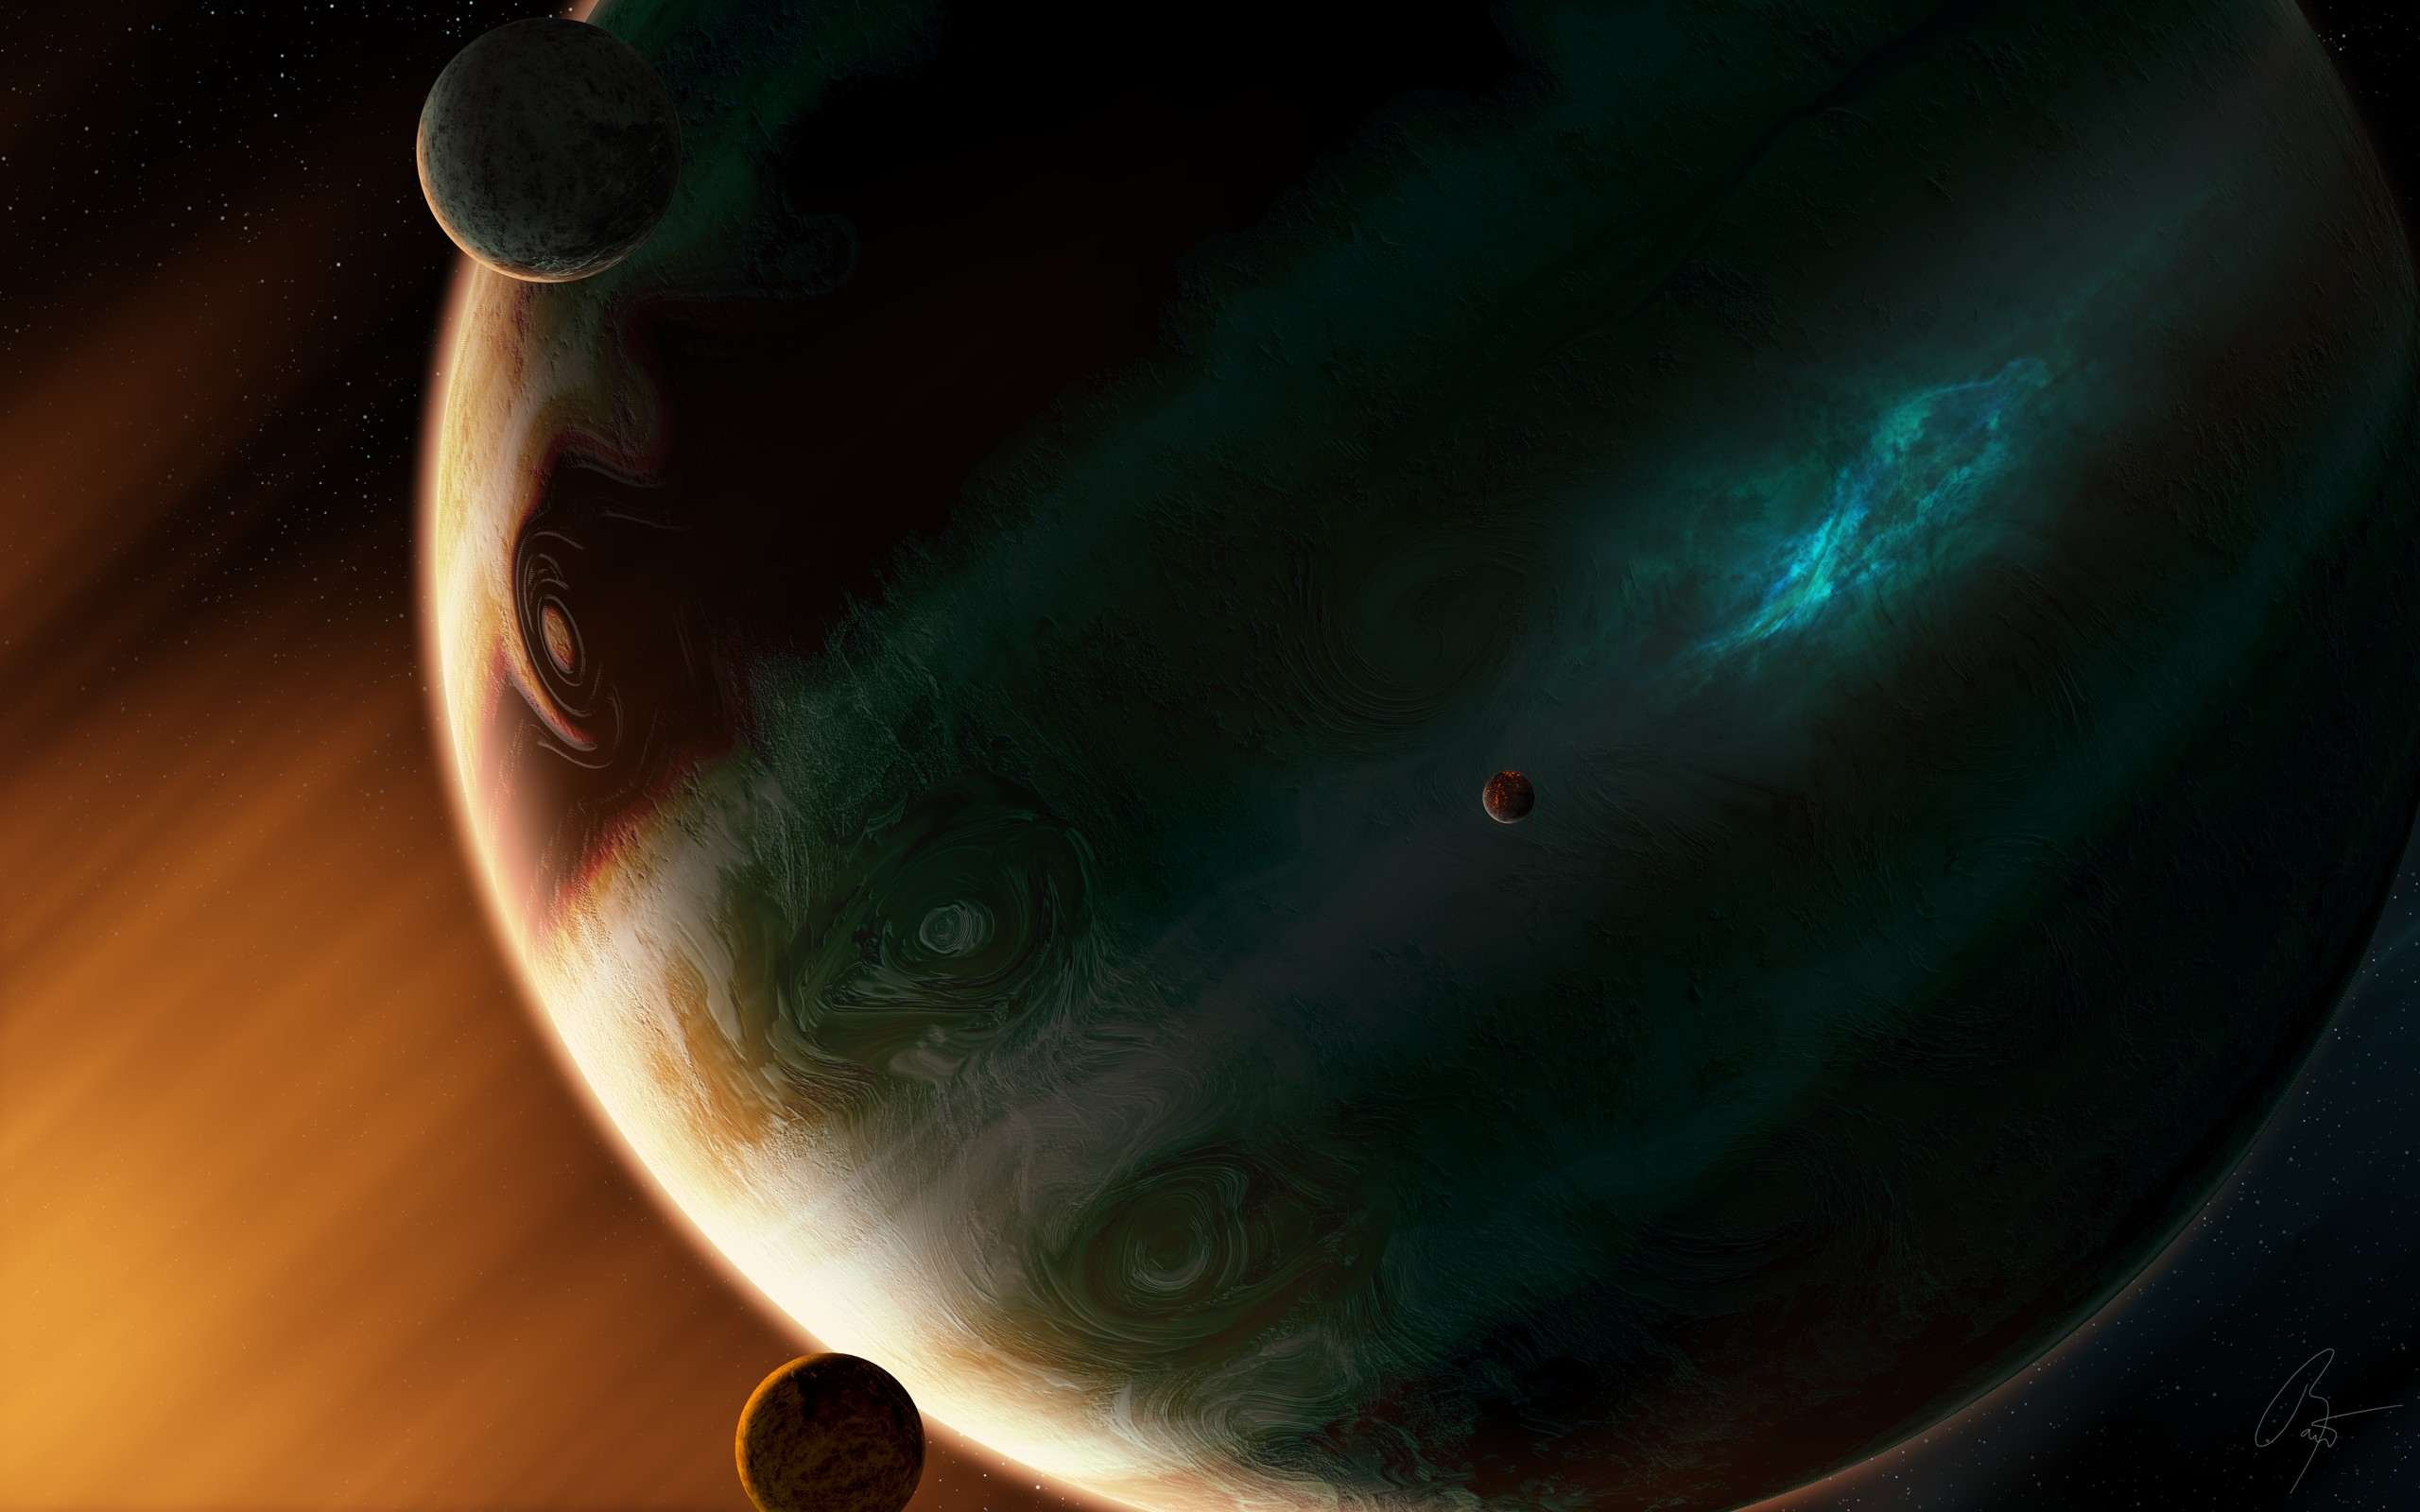 General 2560x1600 Joey Jazz space space art planet digital art